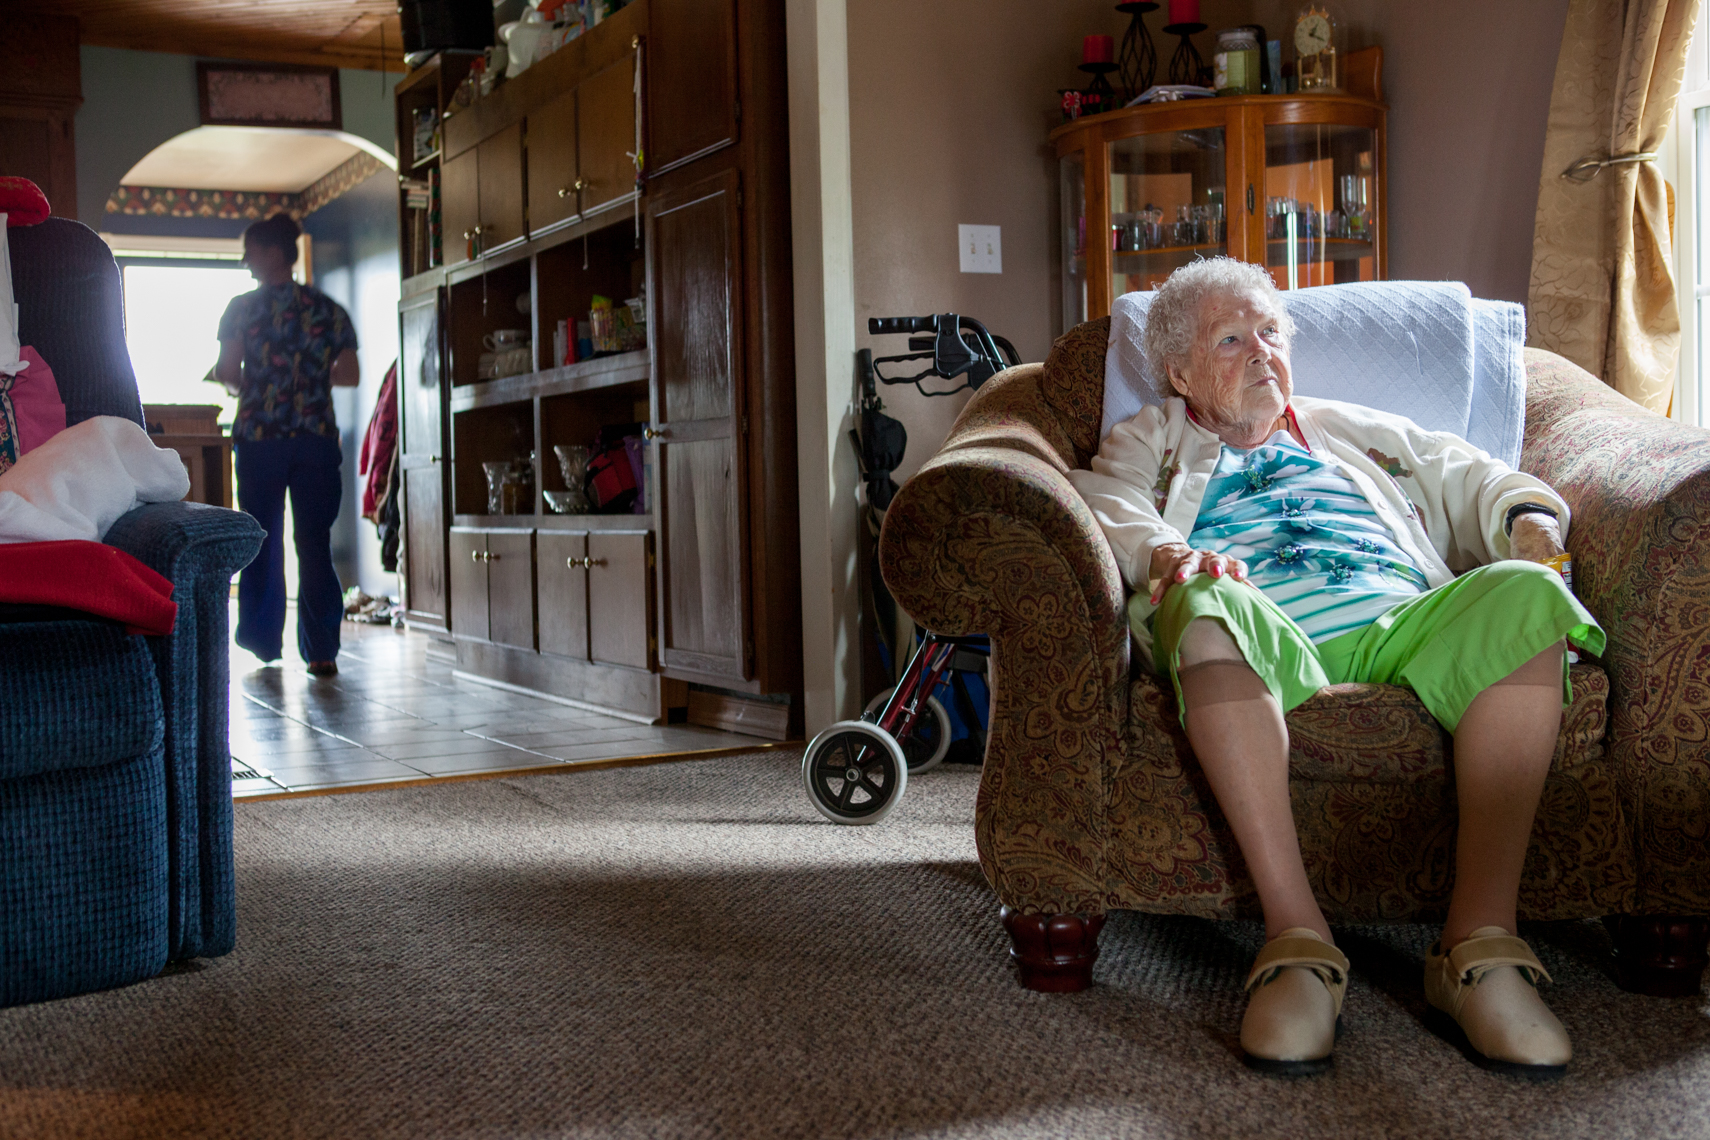 Elderly care policy changes  in Tennessee return Delores Powers to her family